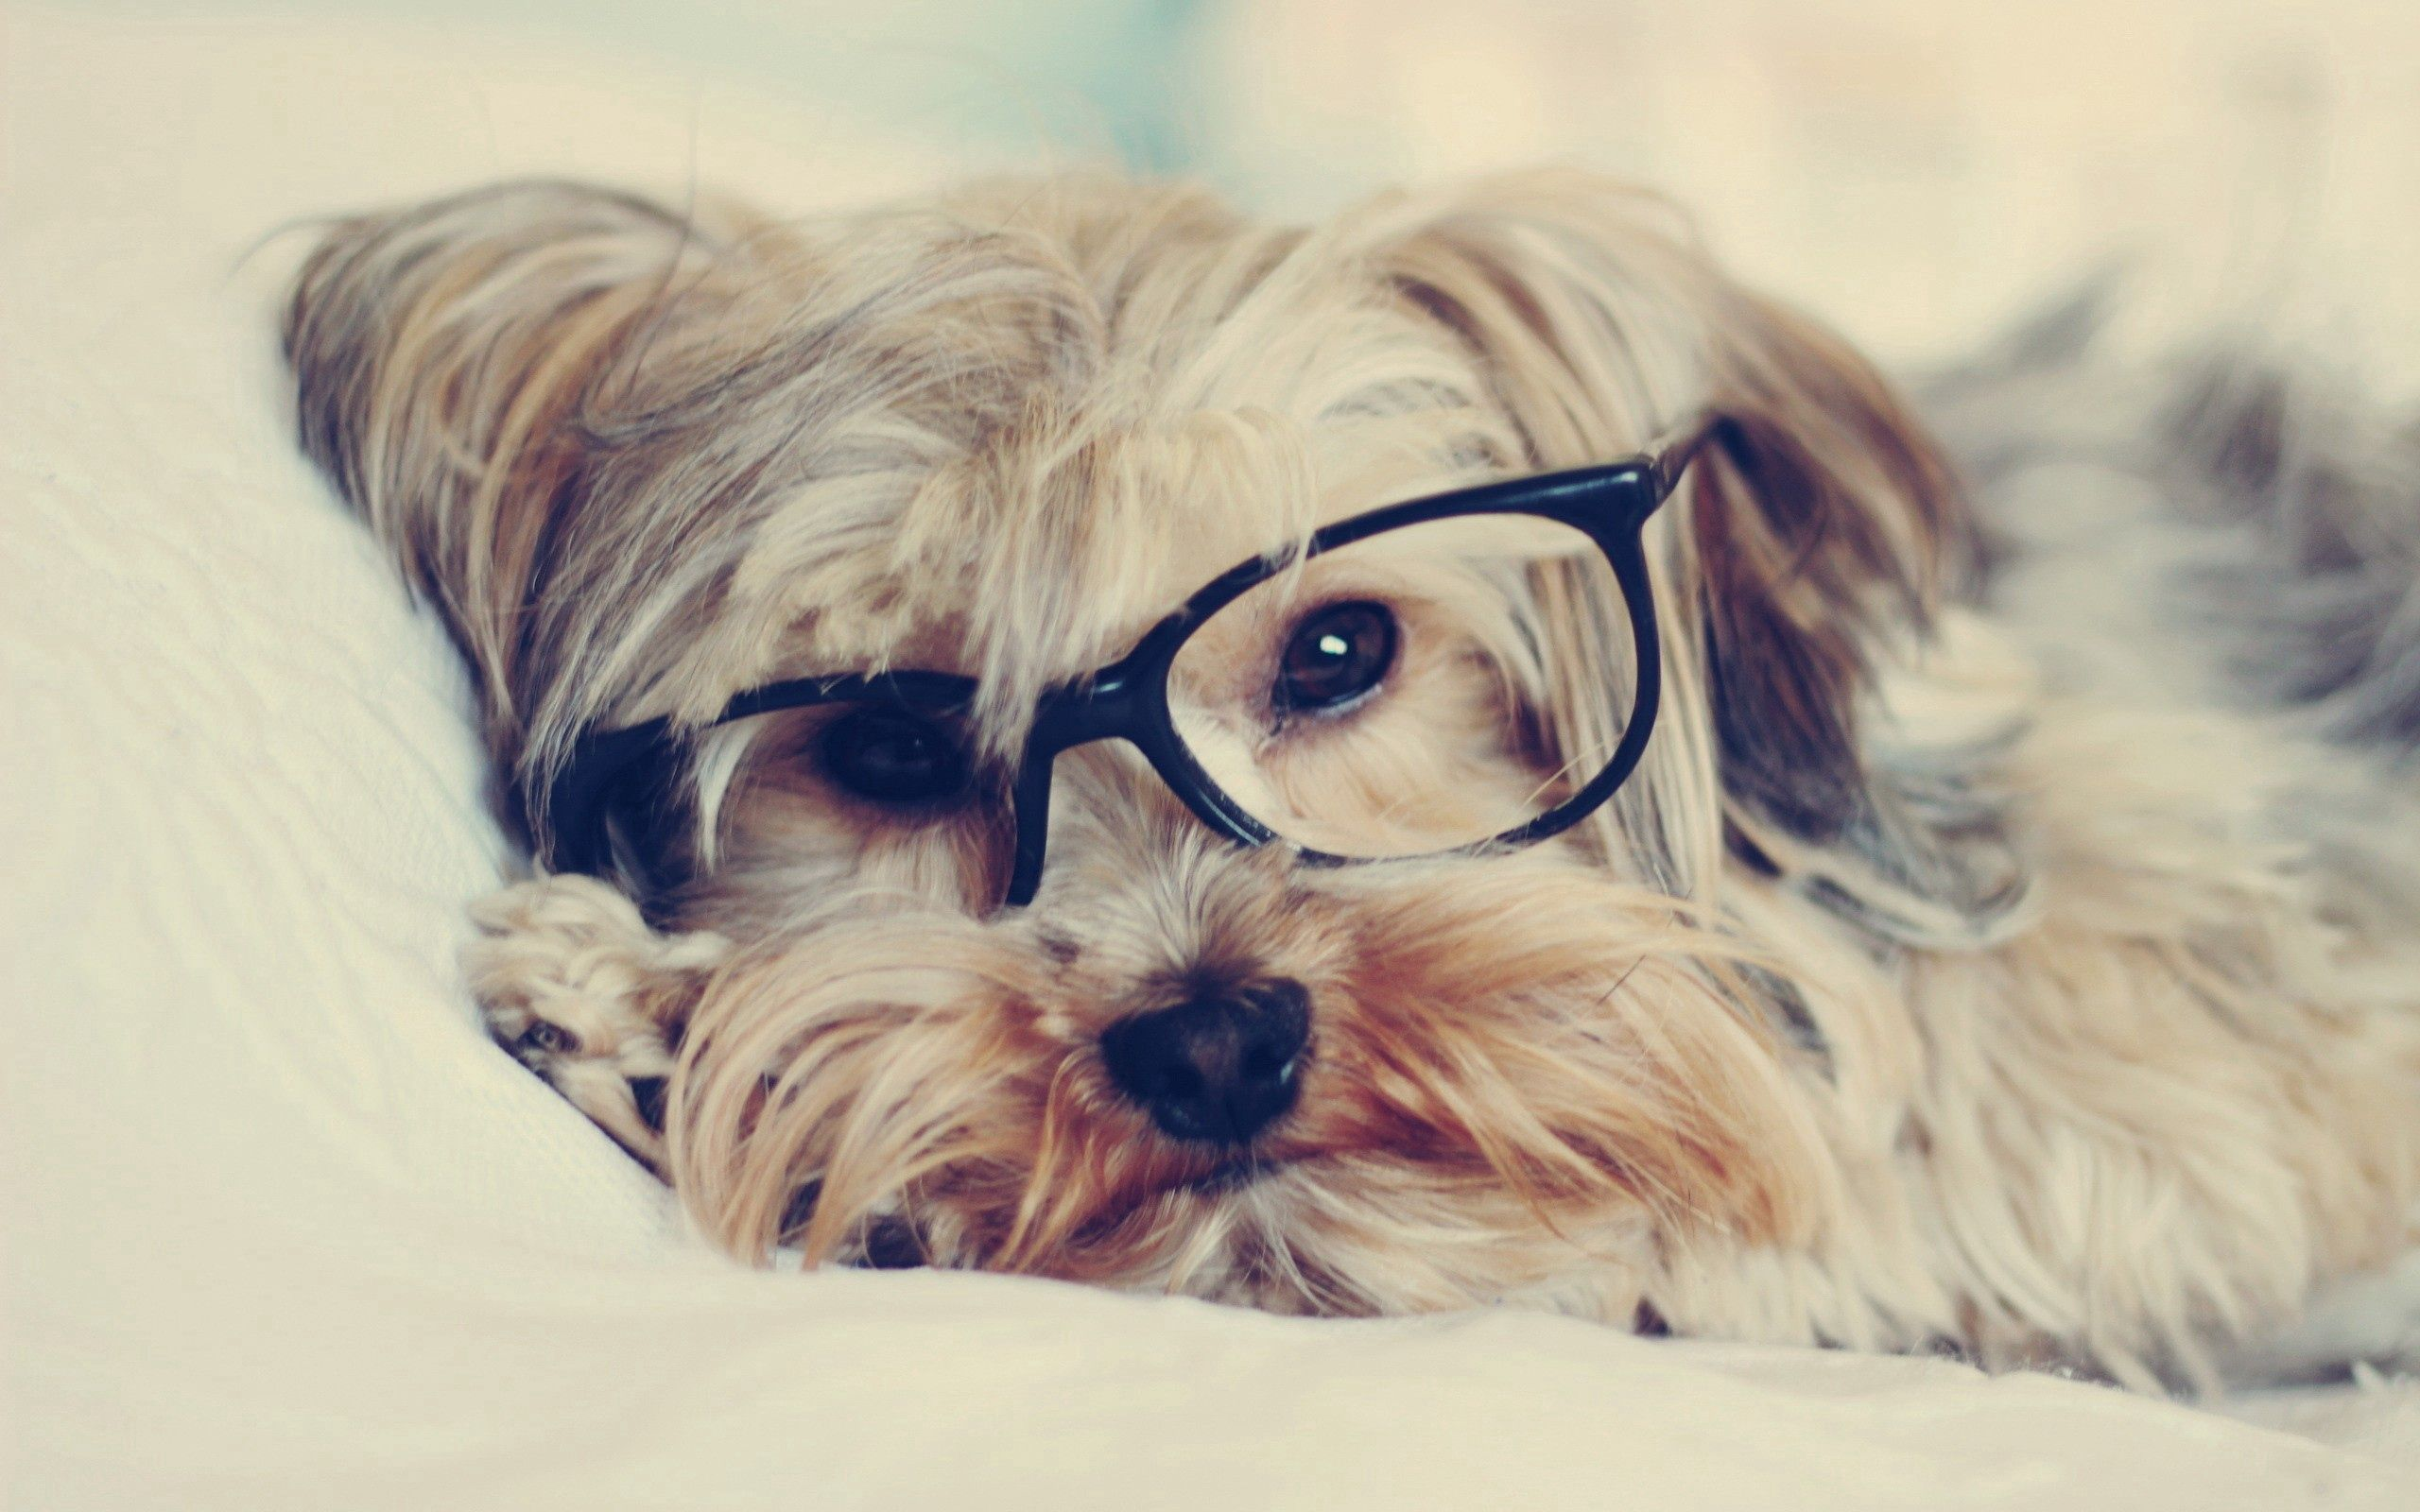 59747 download wallpaper Animals, Dog, Muzzle, Yorkshire Terrier, Glasses, Spectacles screensavers and pictures for free